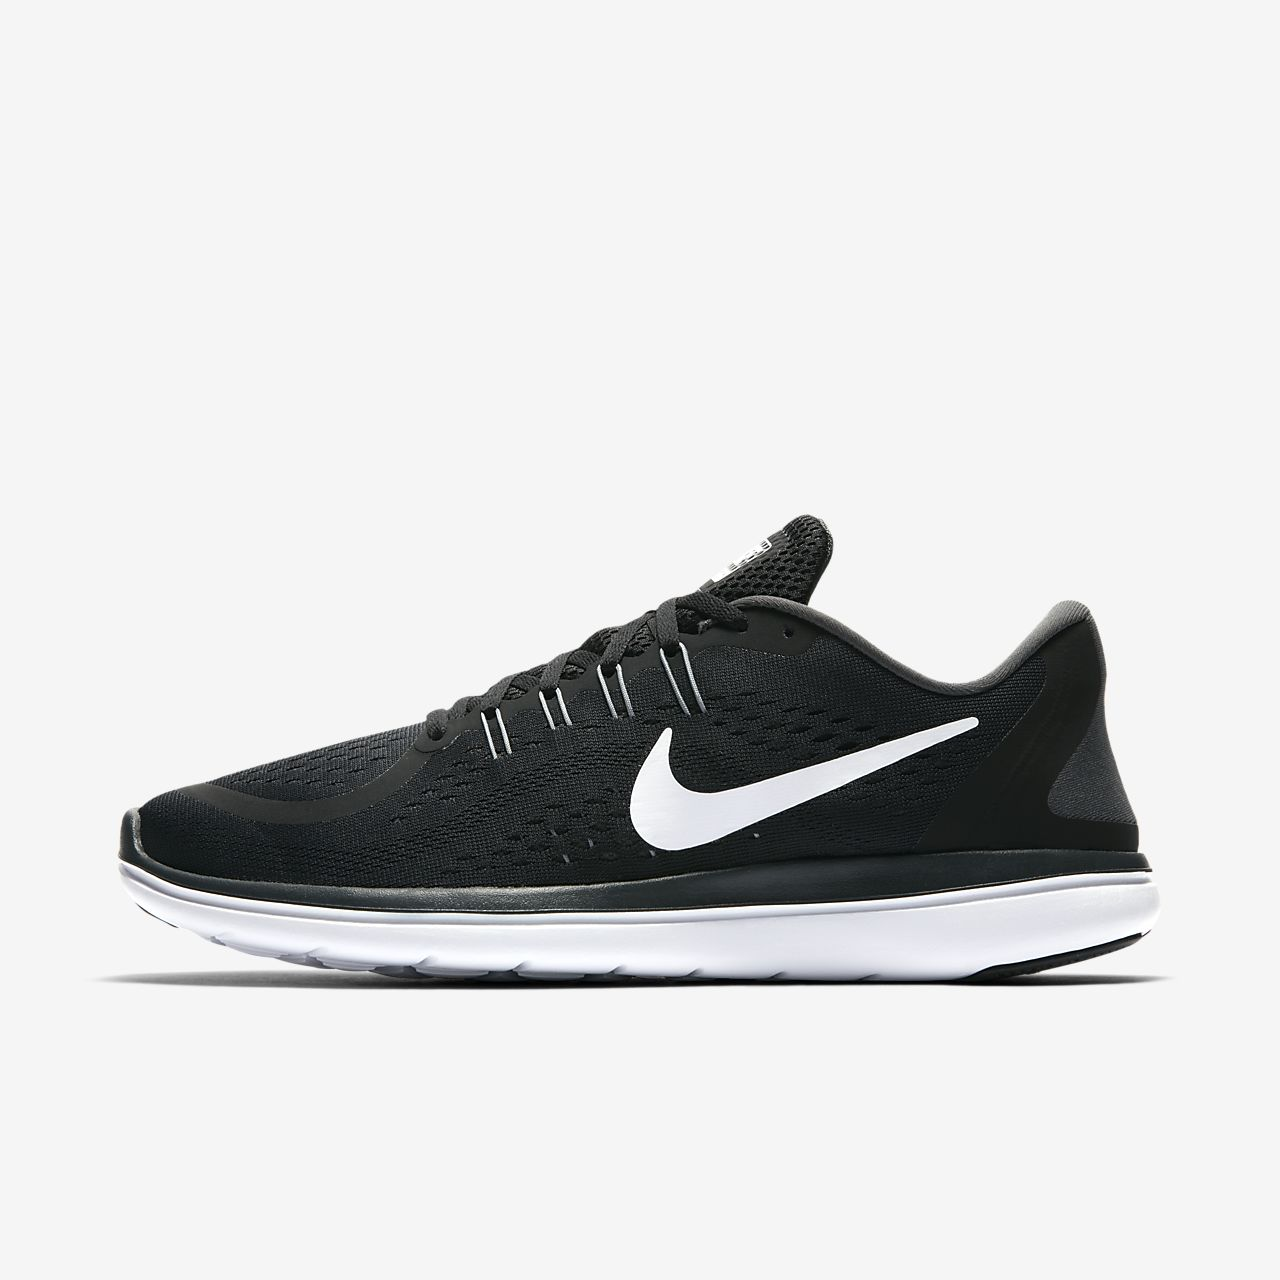 nike free flyknit 2017 men's nz